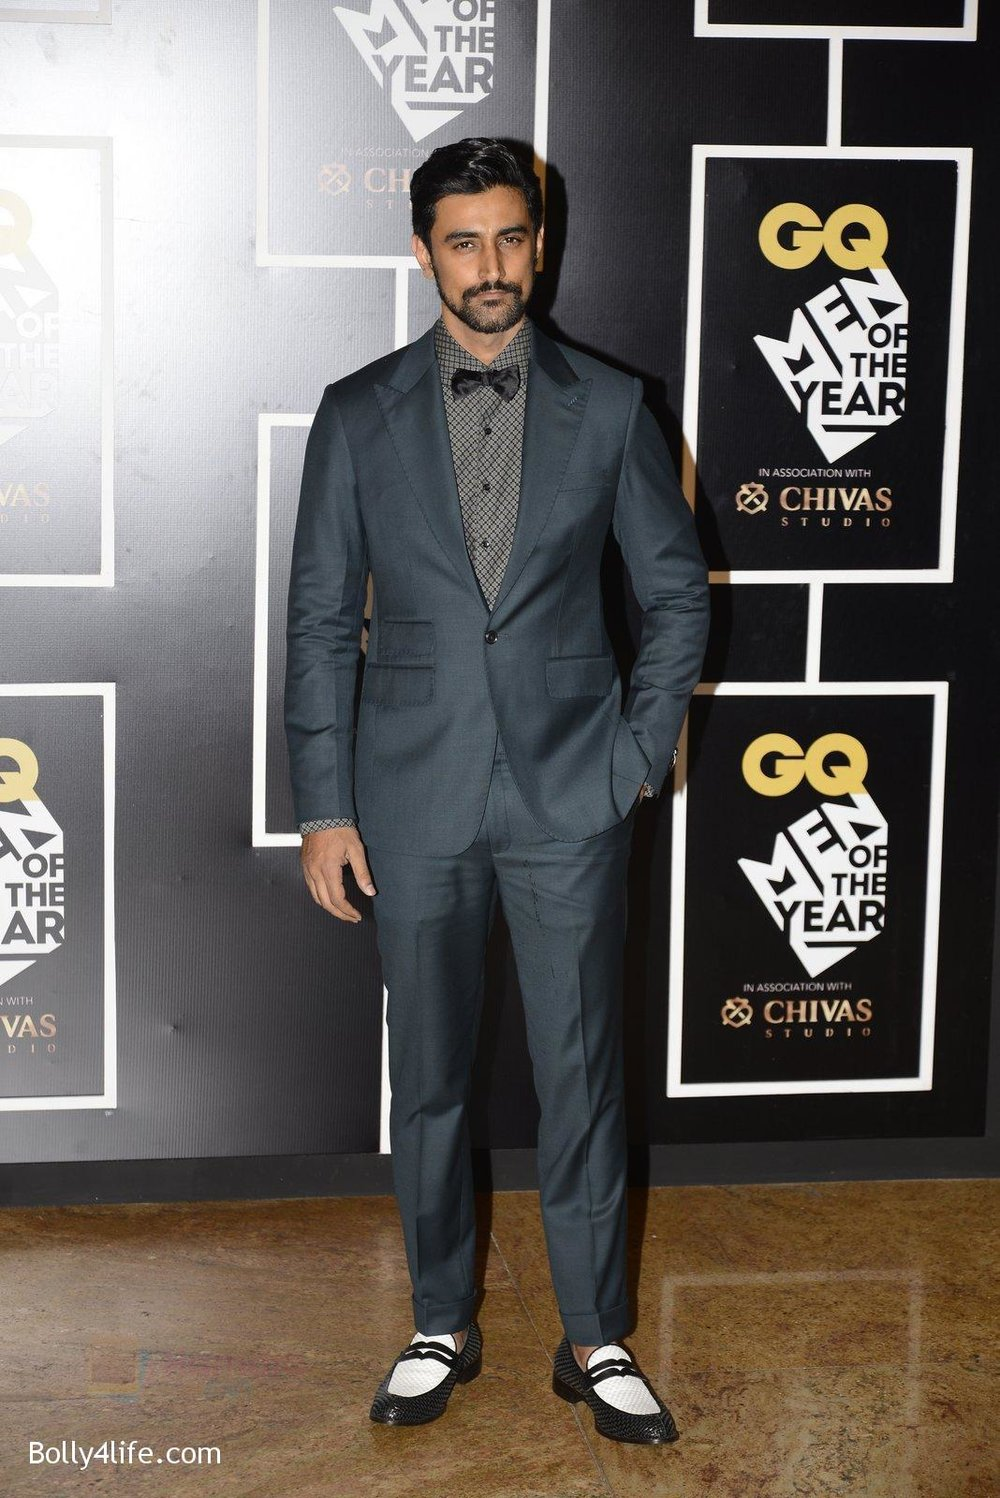 Kunal-Kapoor-at-GQ-MEN-OF-THE-YEAR-on-27th-Sept-2016-1038.jpg